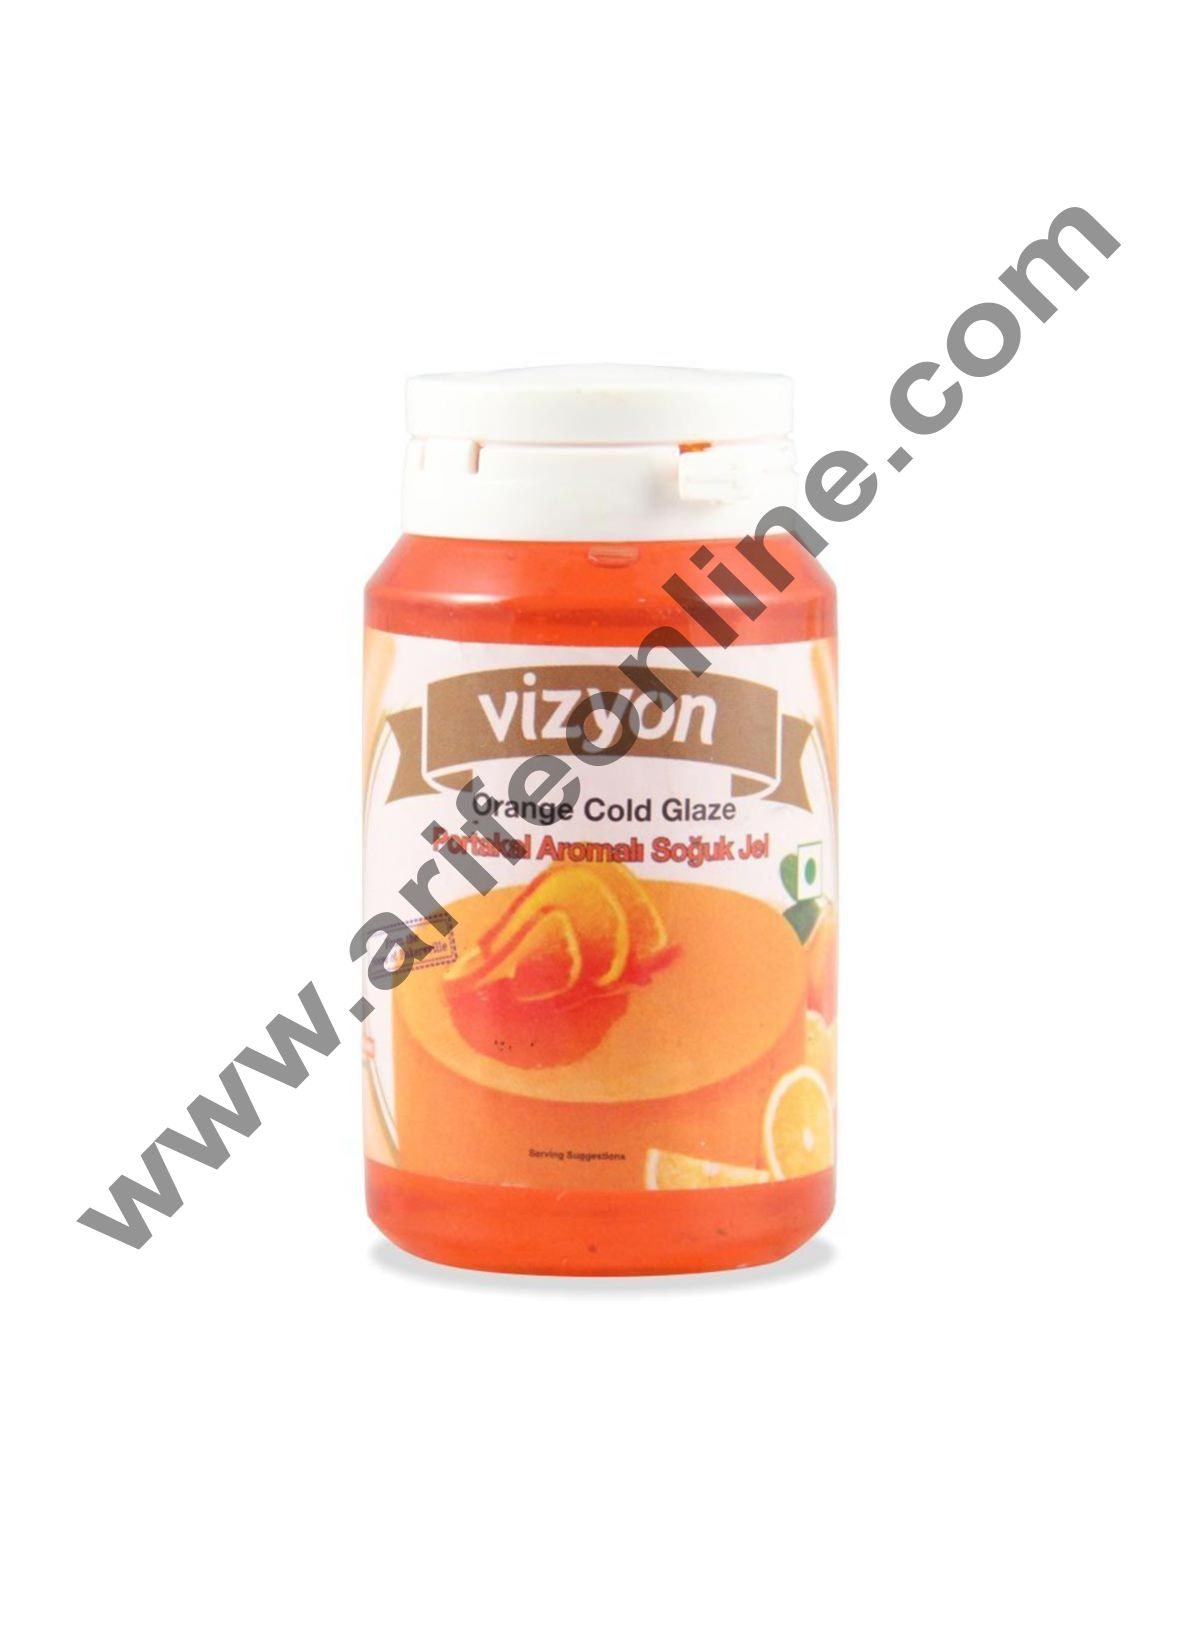 Vizyon Orange Cold Glaze, 200gm